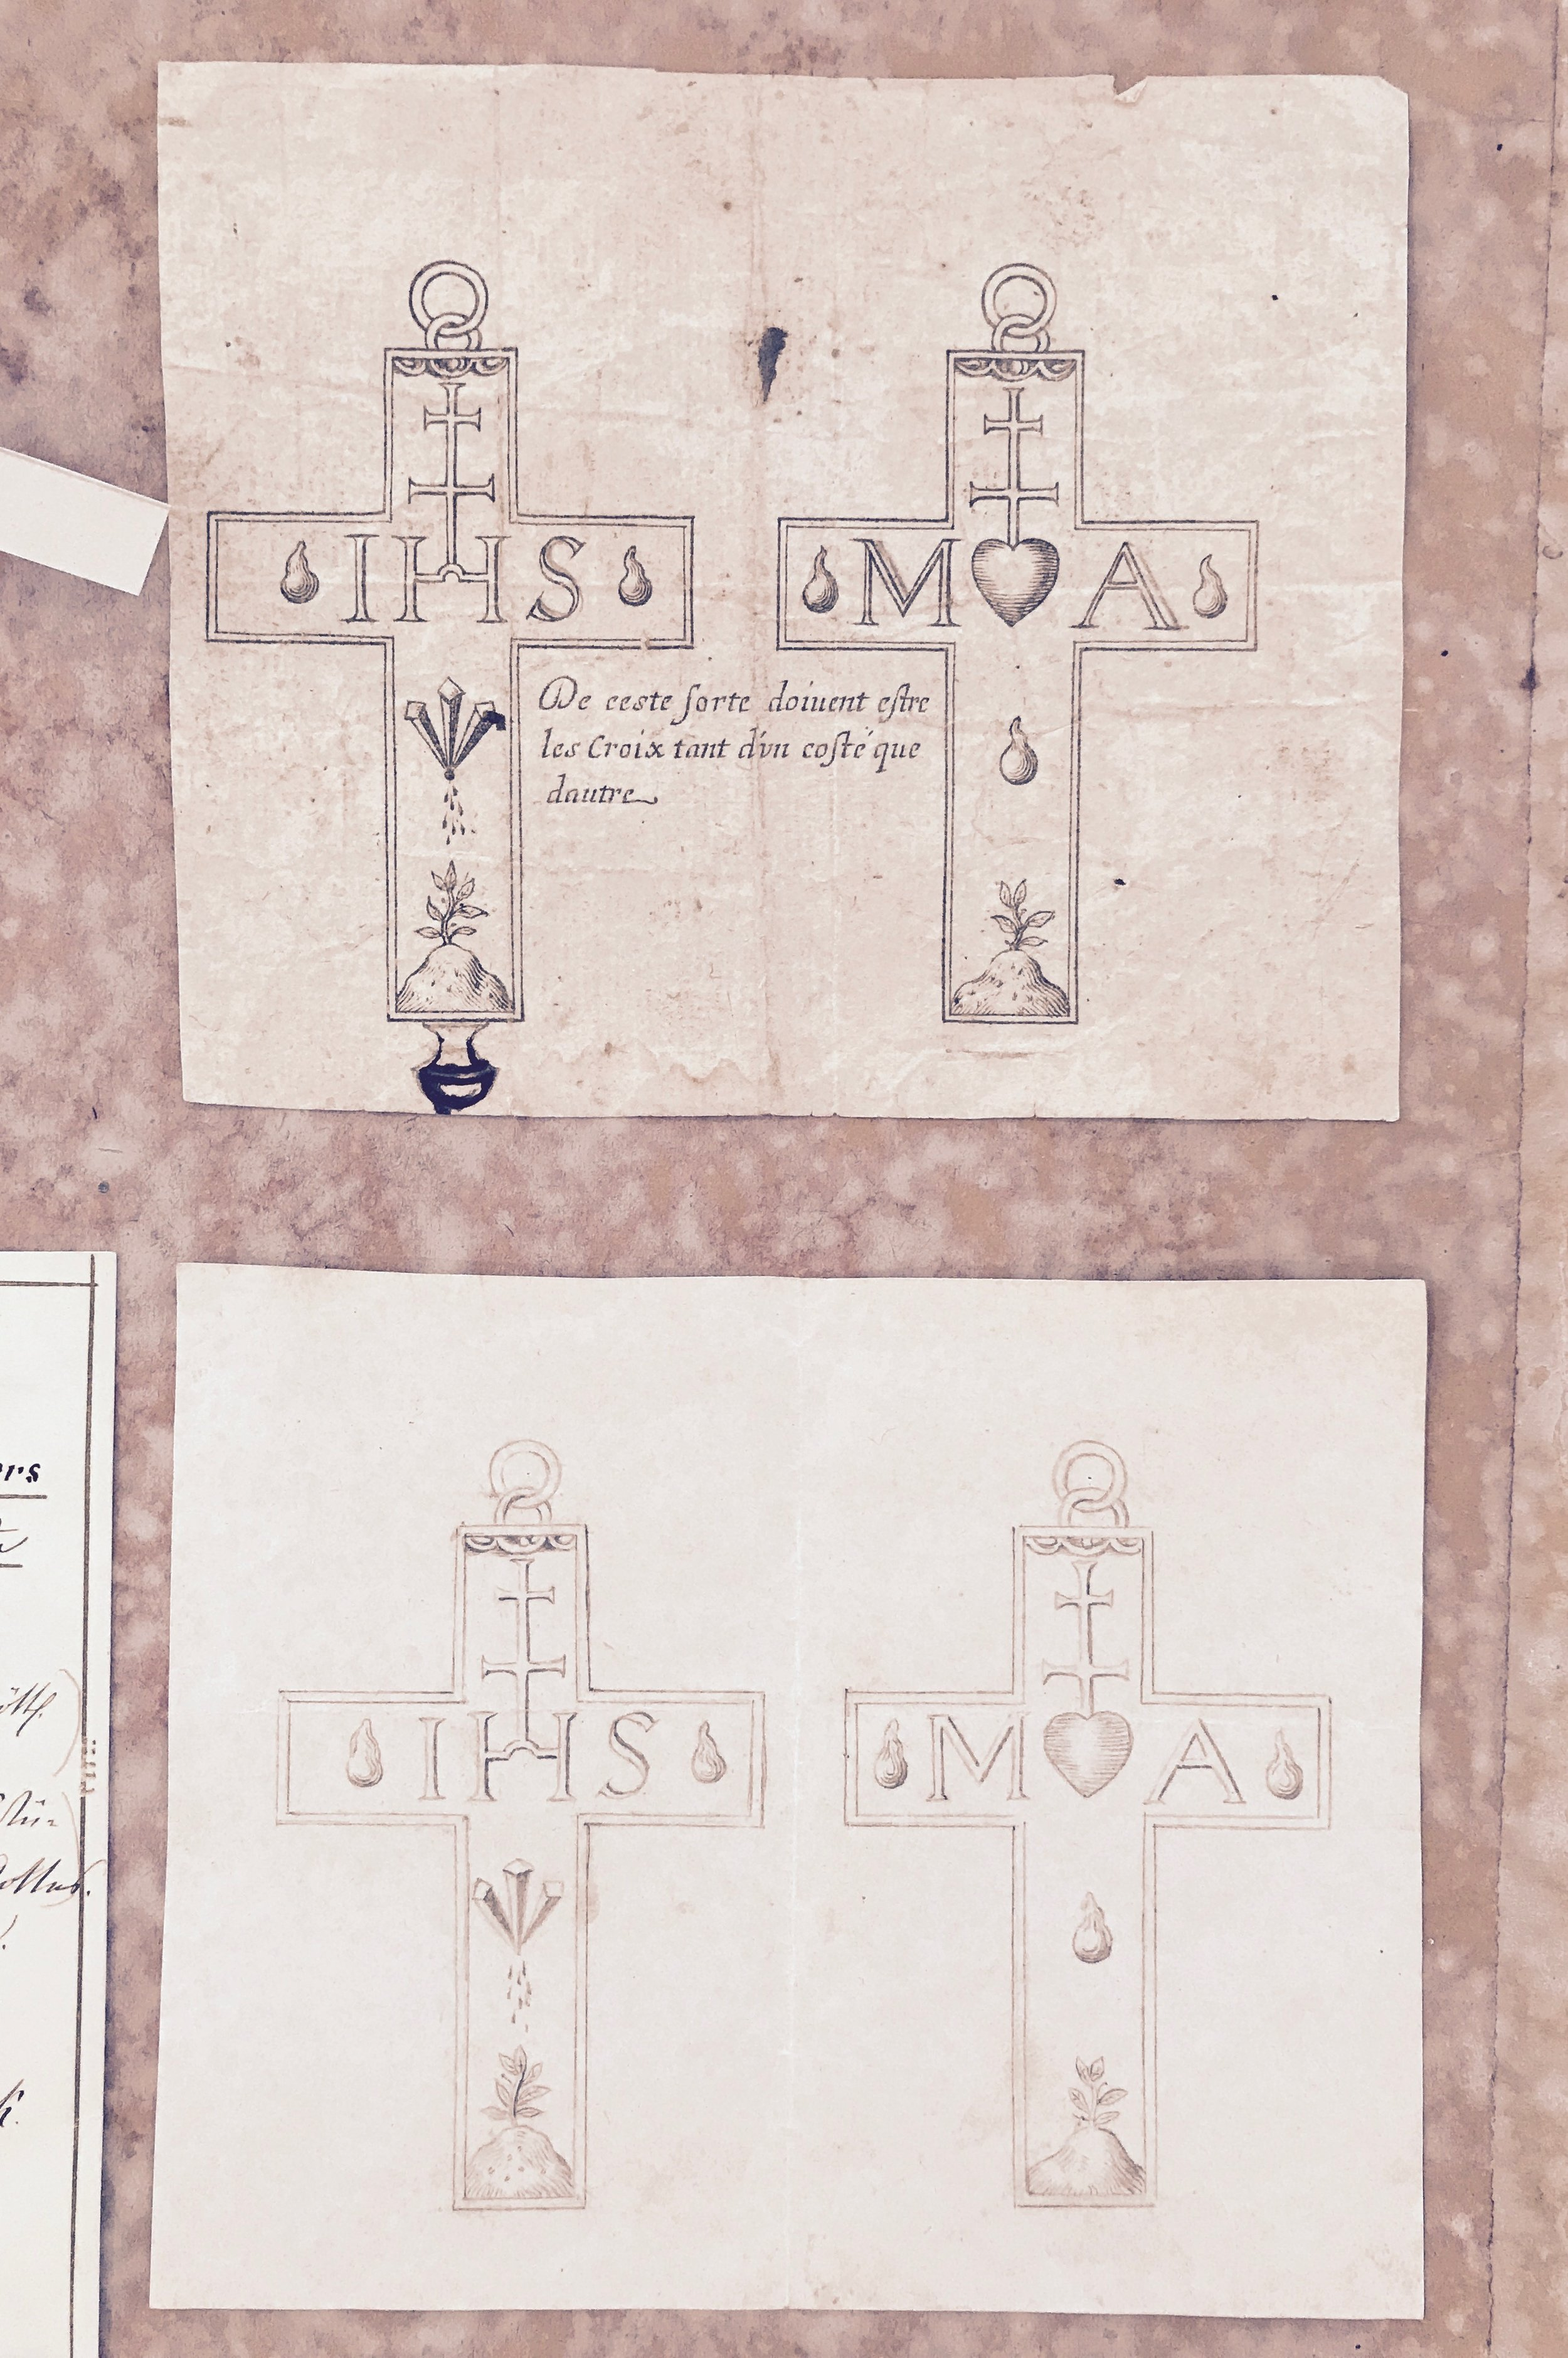 back and front design of the silver crosses